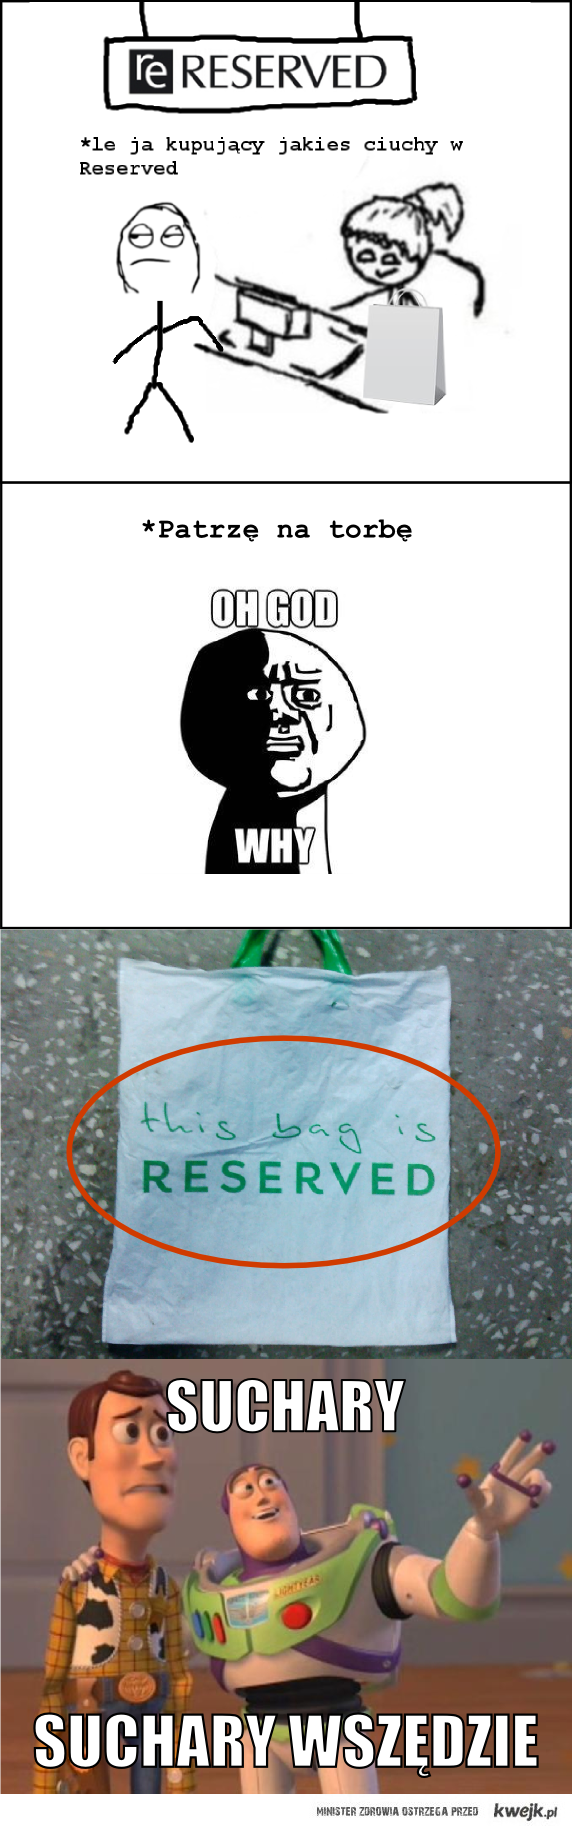 Reserved - suchar